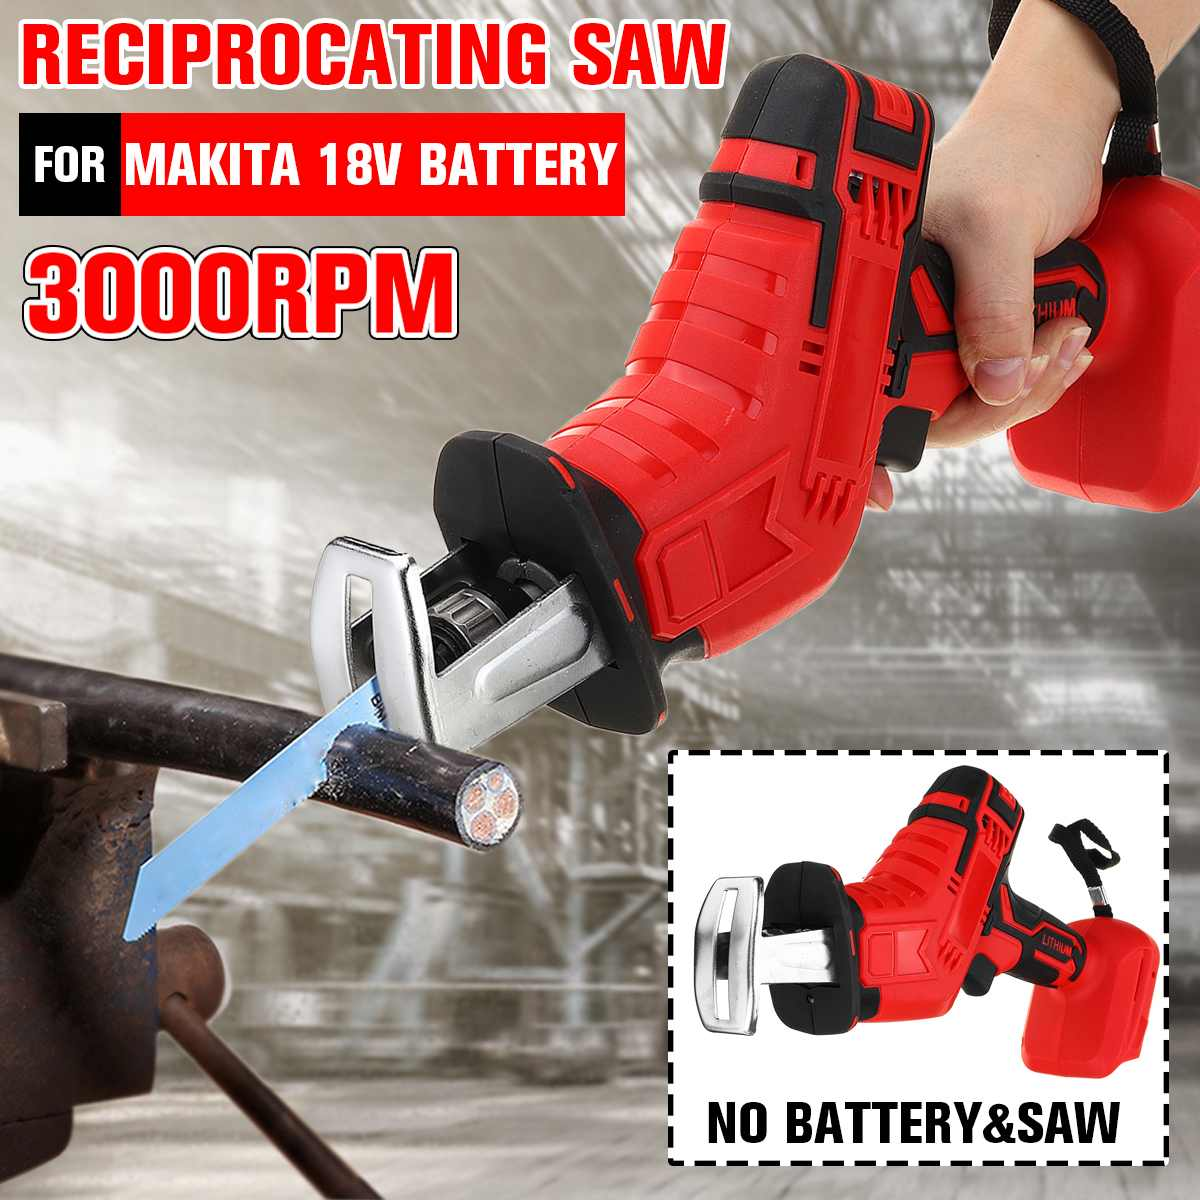 18V Cordless Mini Reciprocating Saw Body Adjustable Speed Replacement Woodworking Cutter Tool Electric Saw for Makita Battery